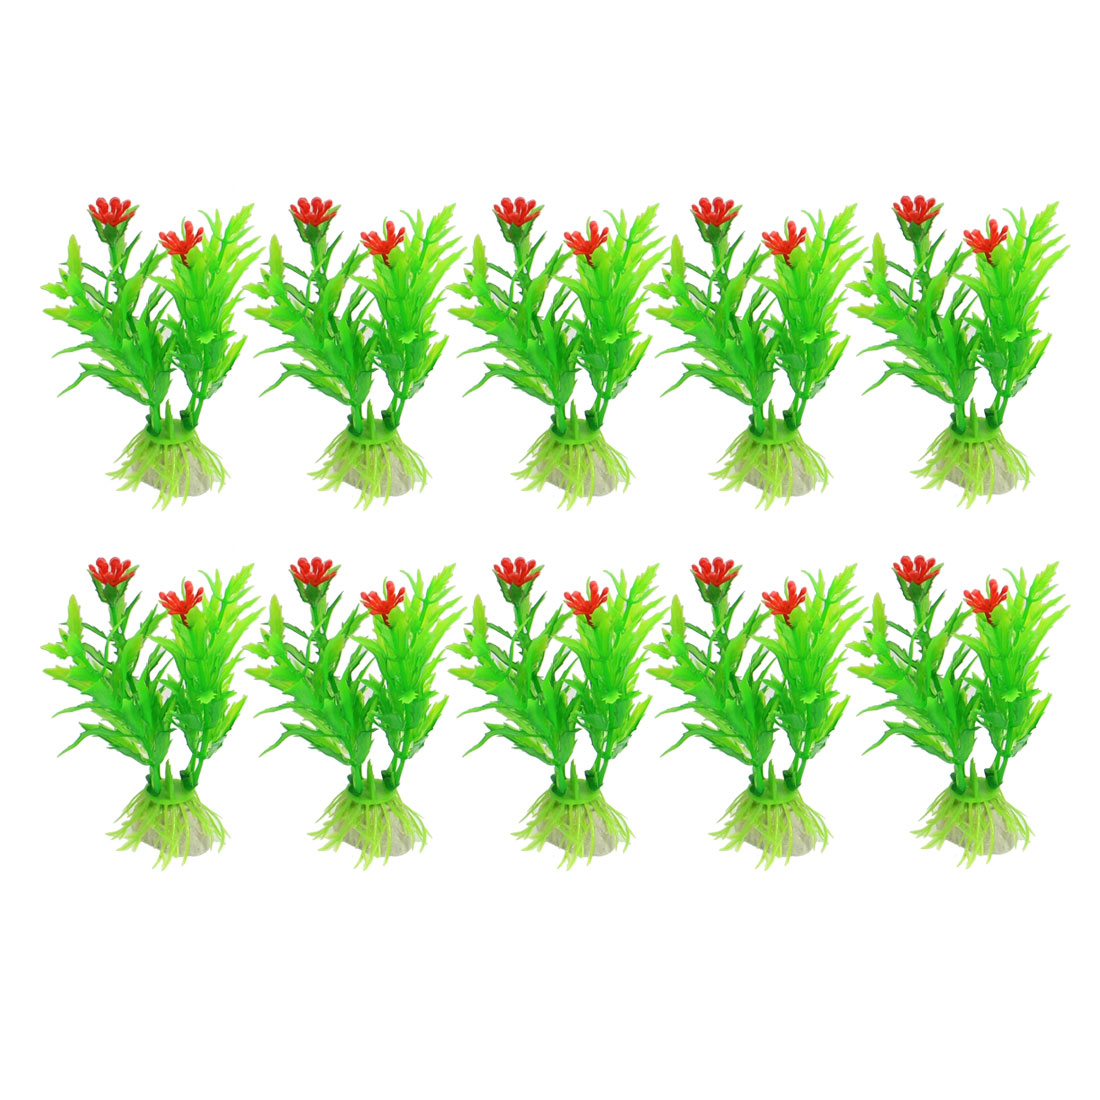 "10 Pcs 3.5"" Green Red Water Plant Grass for Fish Tank Aquarium"